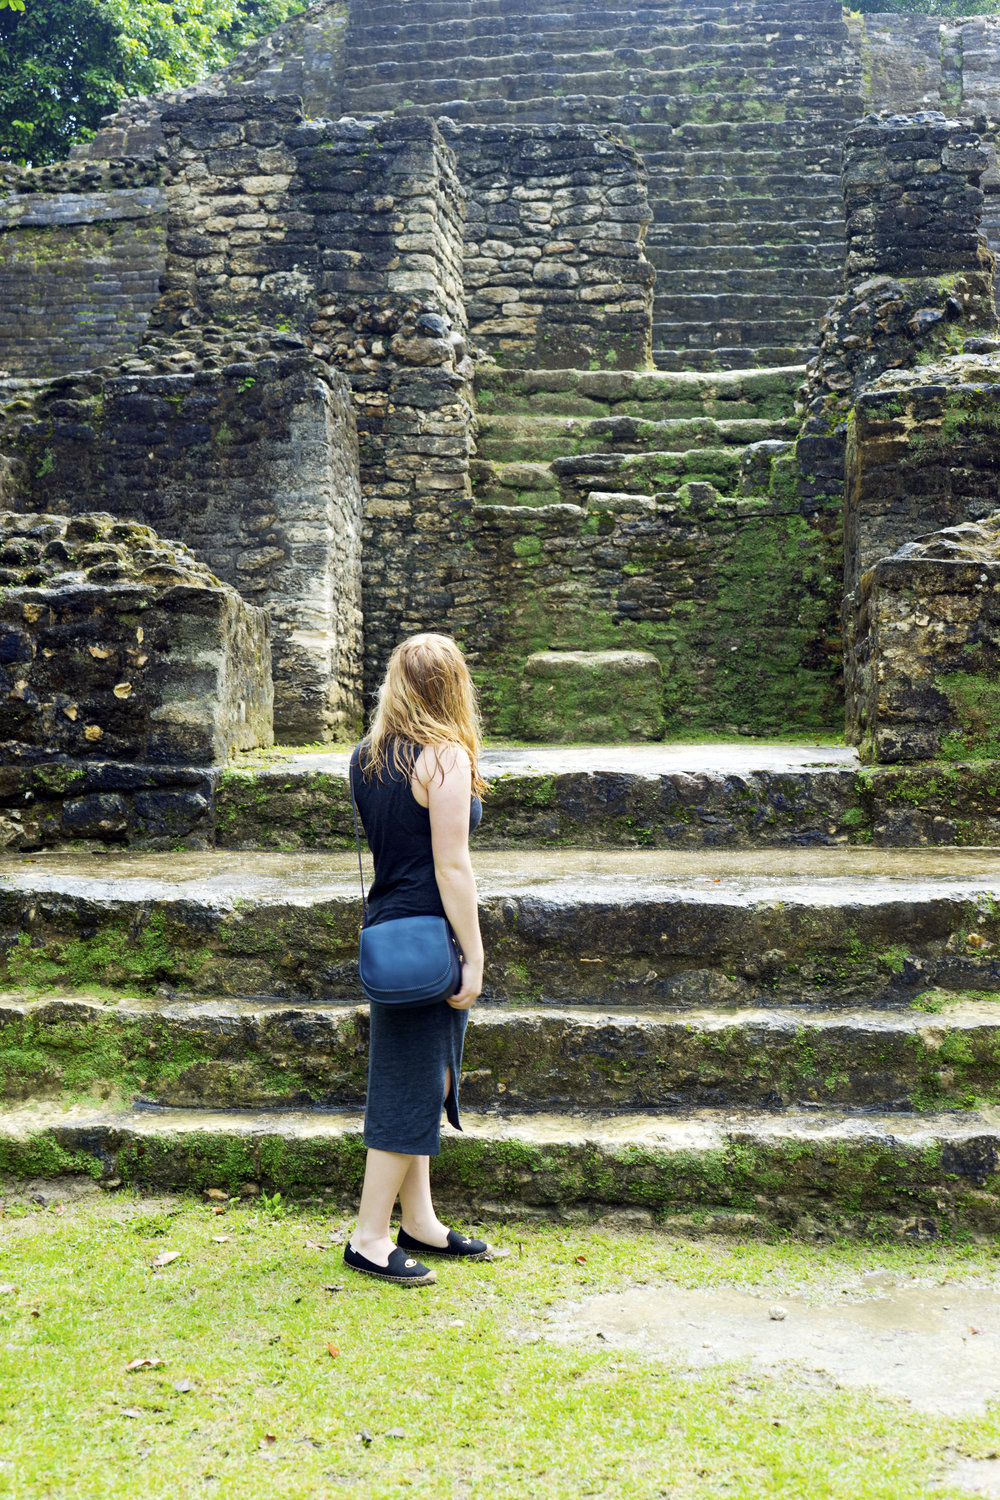 Maggie à la Mode: The Best of 2017. January - Travel à la Mode: Lamanai Mayan Ruins in Belize